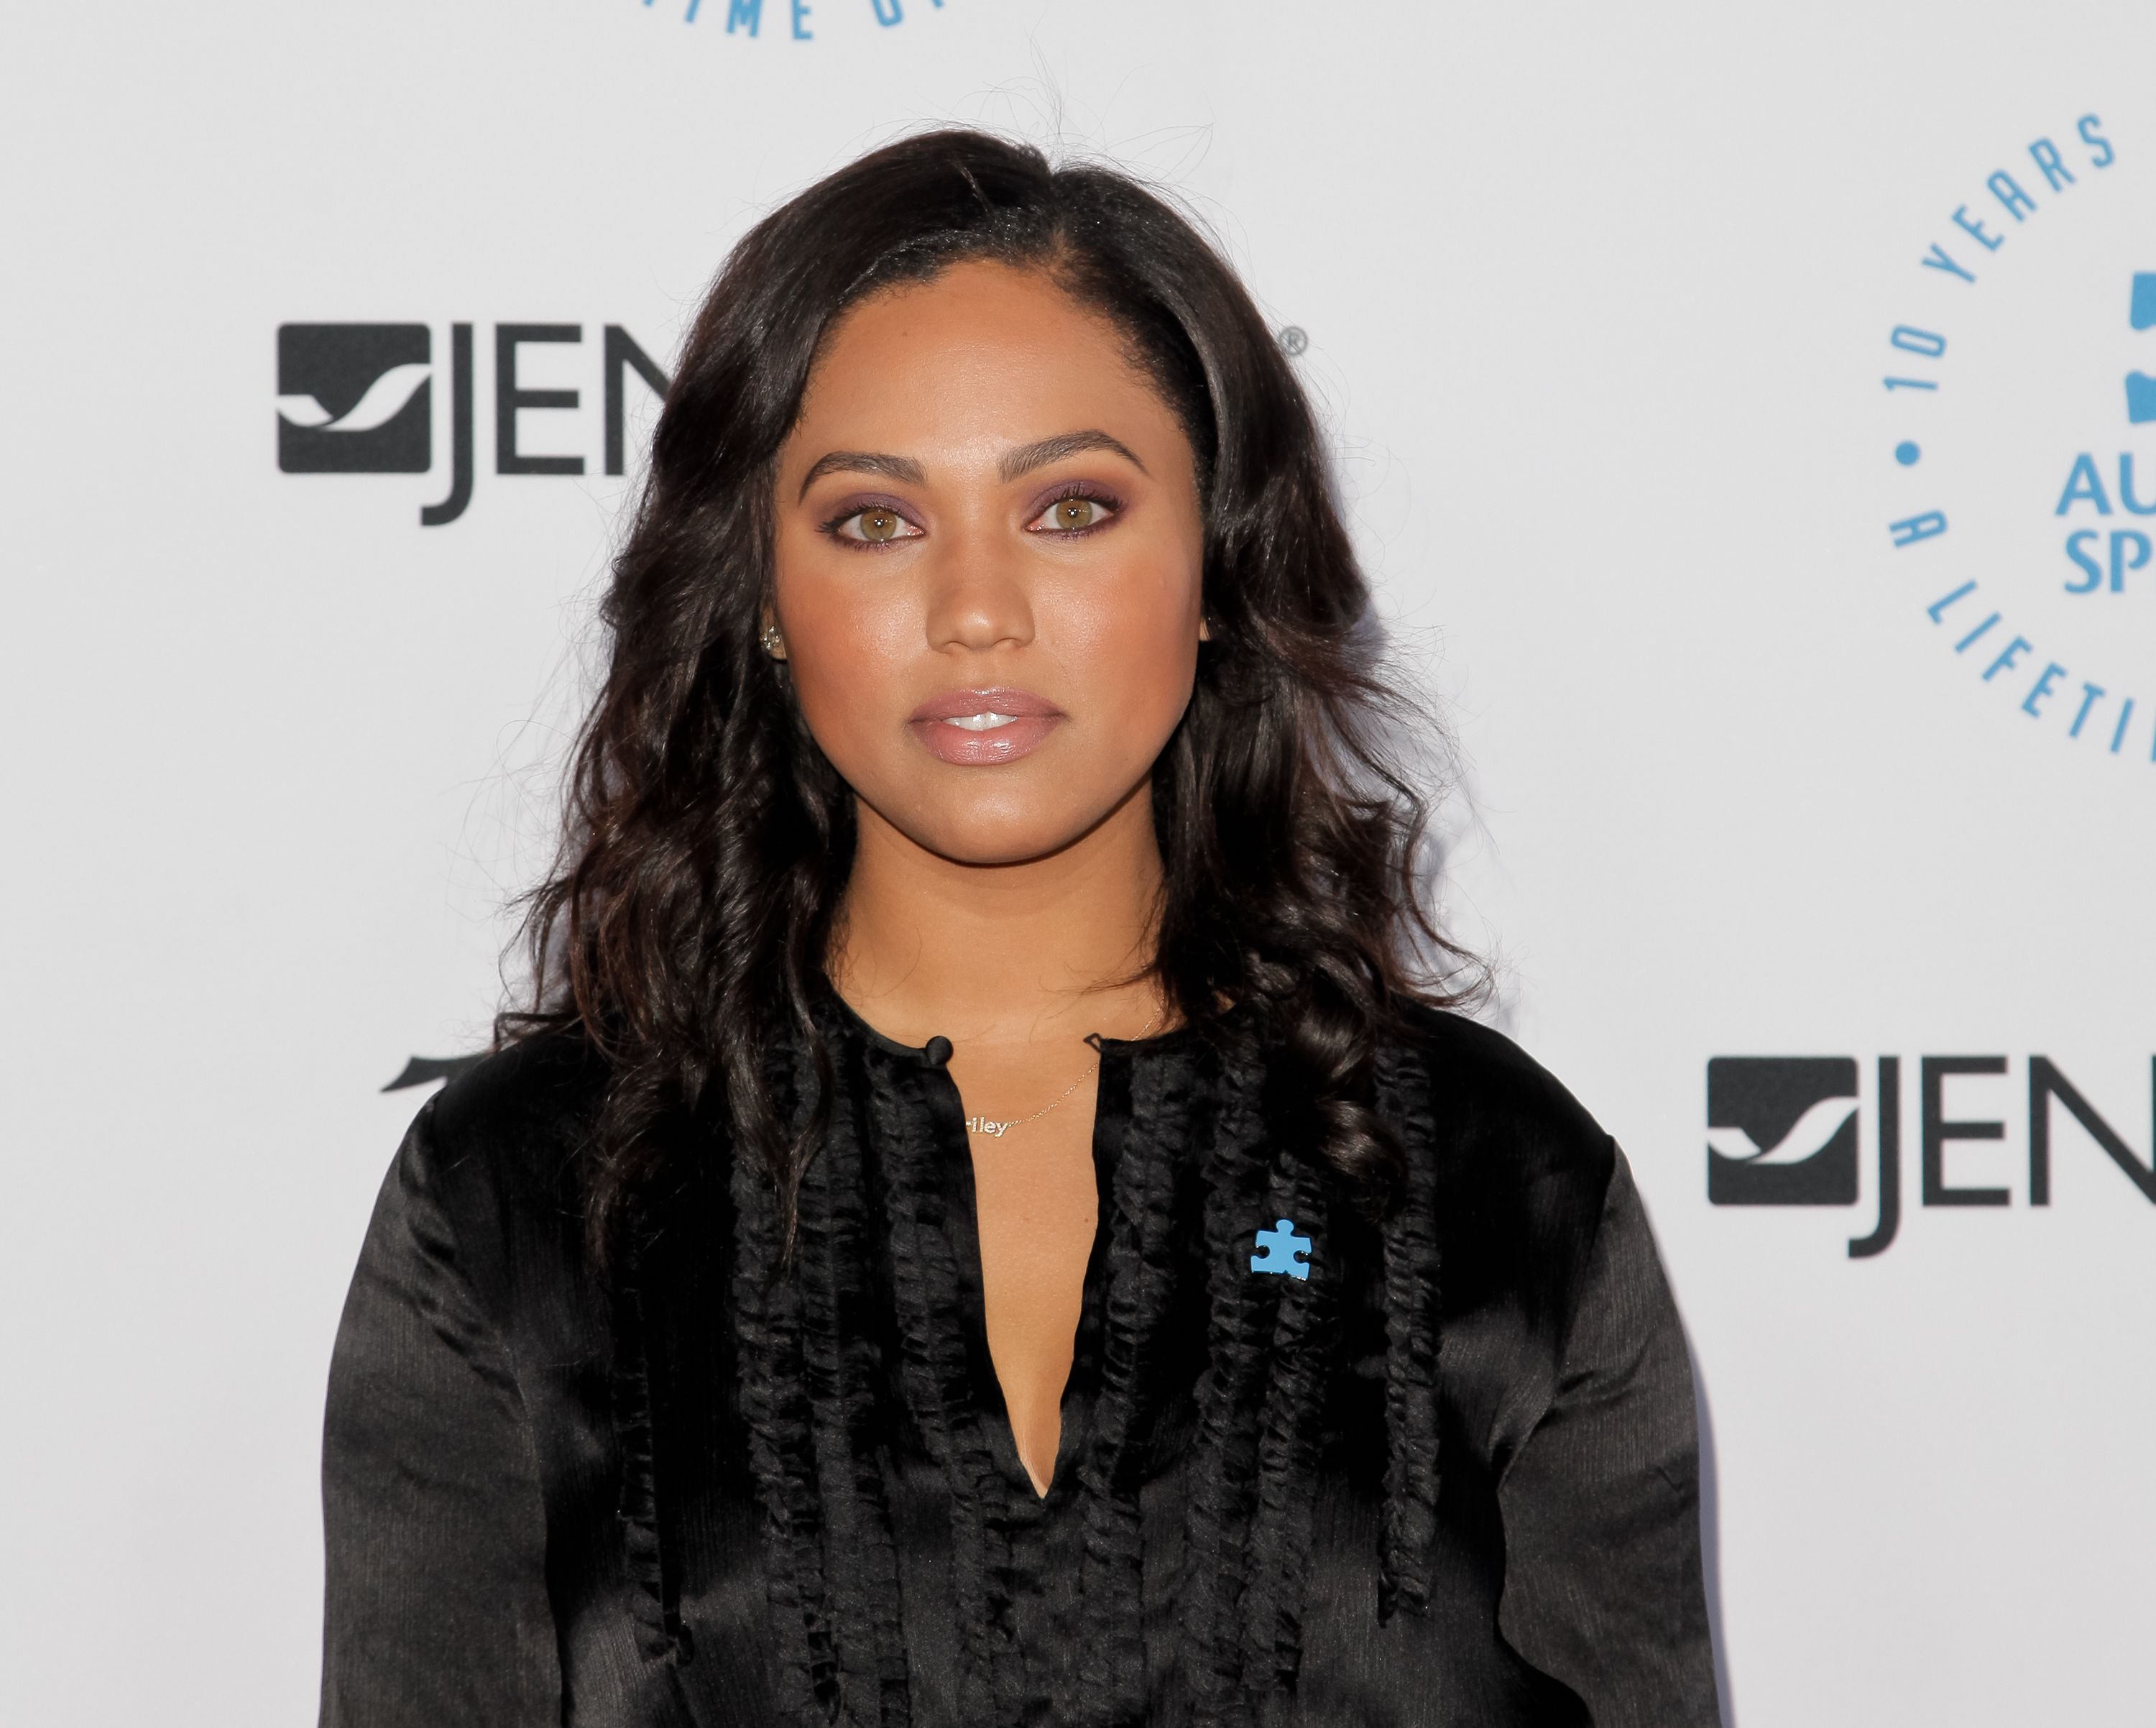 Ayesha Curry during the Autism Speaks to Los Angeles Celebrity Chef Gala at Barker Hangar on October 8, 2015 in Santa Monica, California. | Source: Getty Images